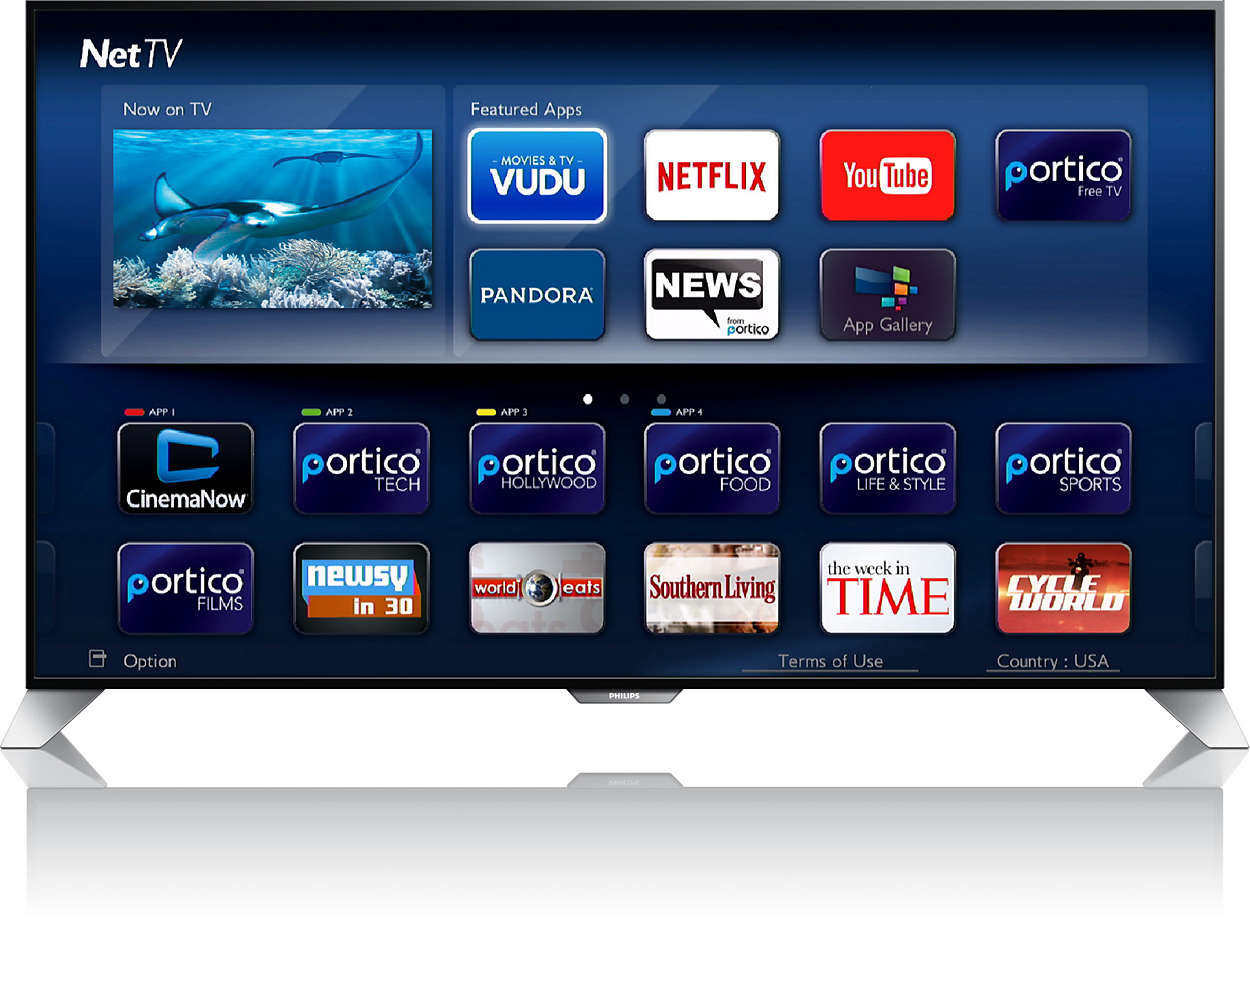 philips smart tv how to download apps